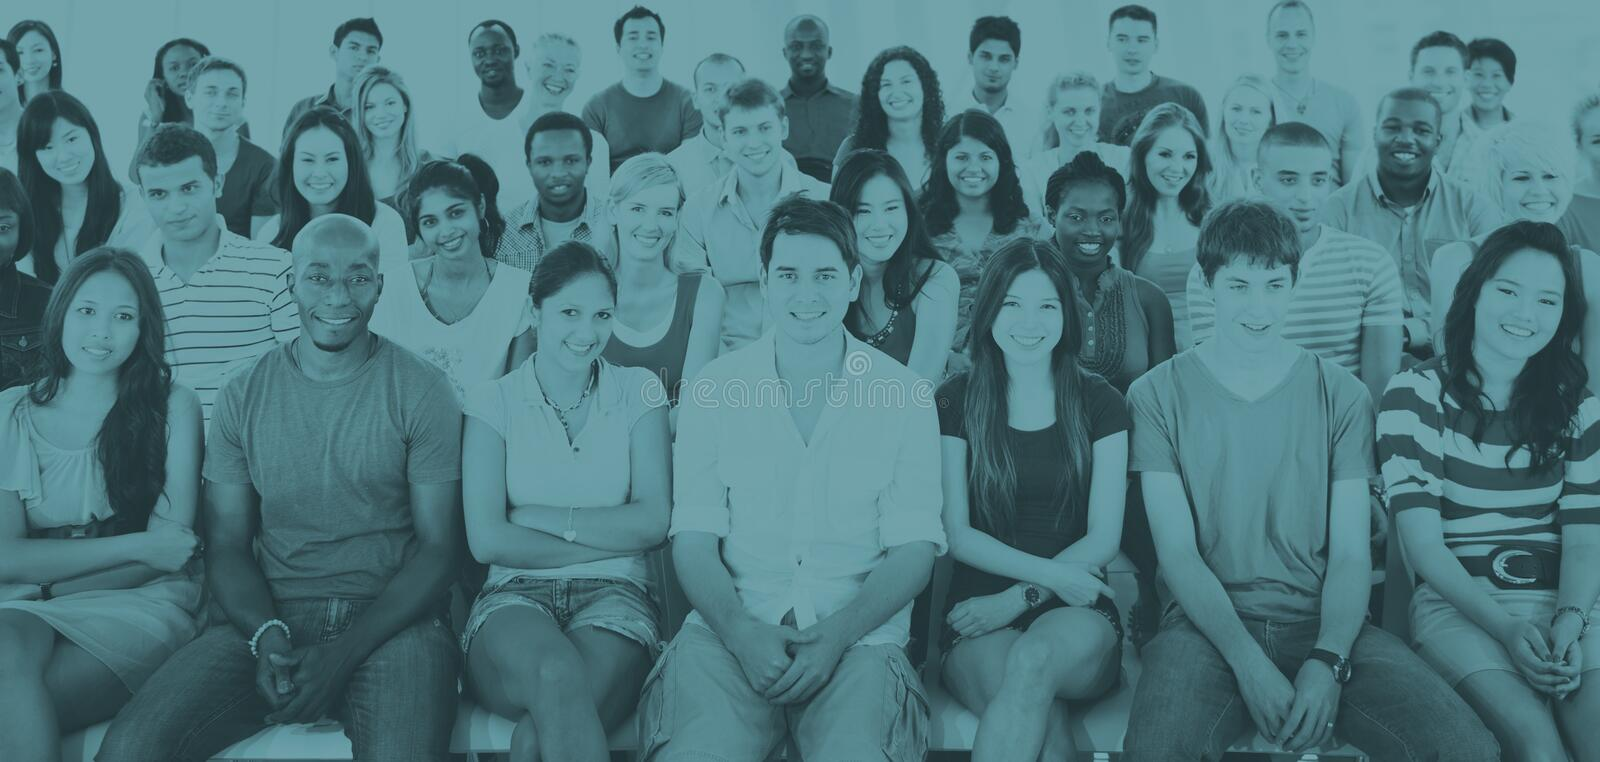 Group People Crowd Audience Casual Sitting Concept royalty free stock photos